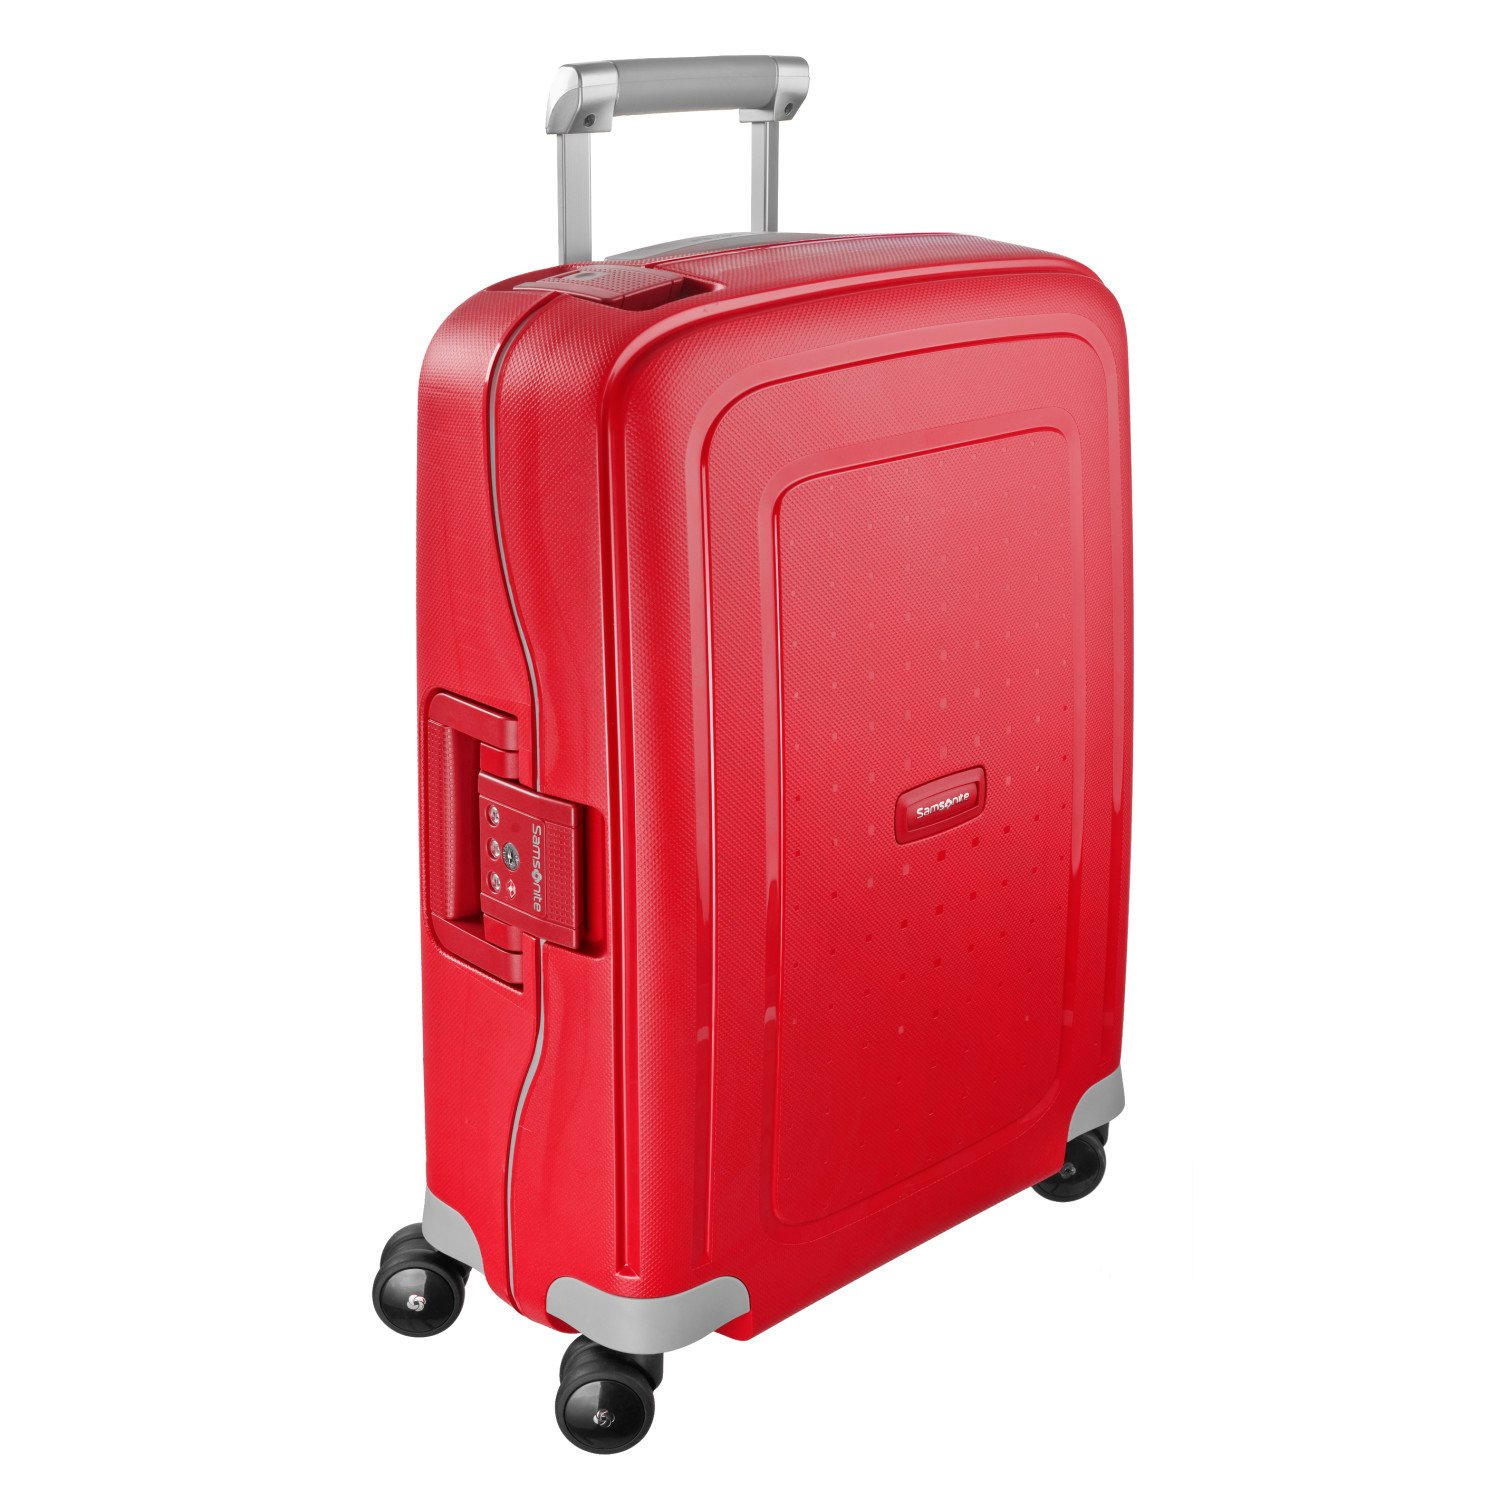 Samsonite S'Cure Hardside Checked Luggage with Spinner Wheels, 30 Inch, Crimson Red